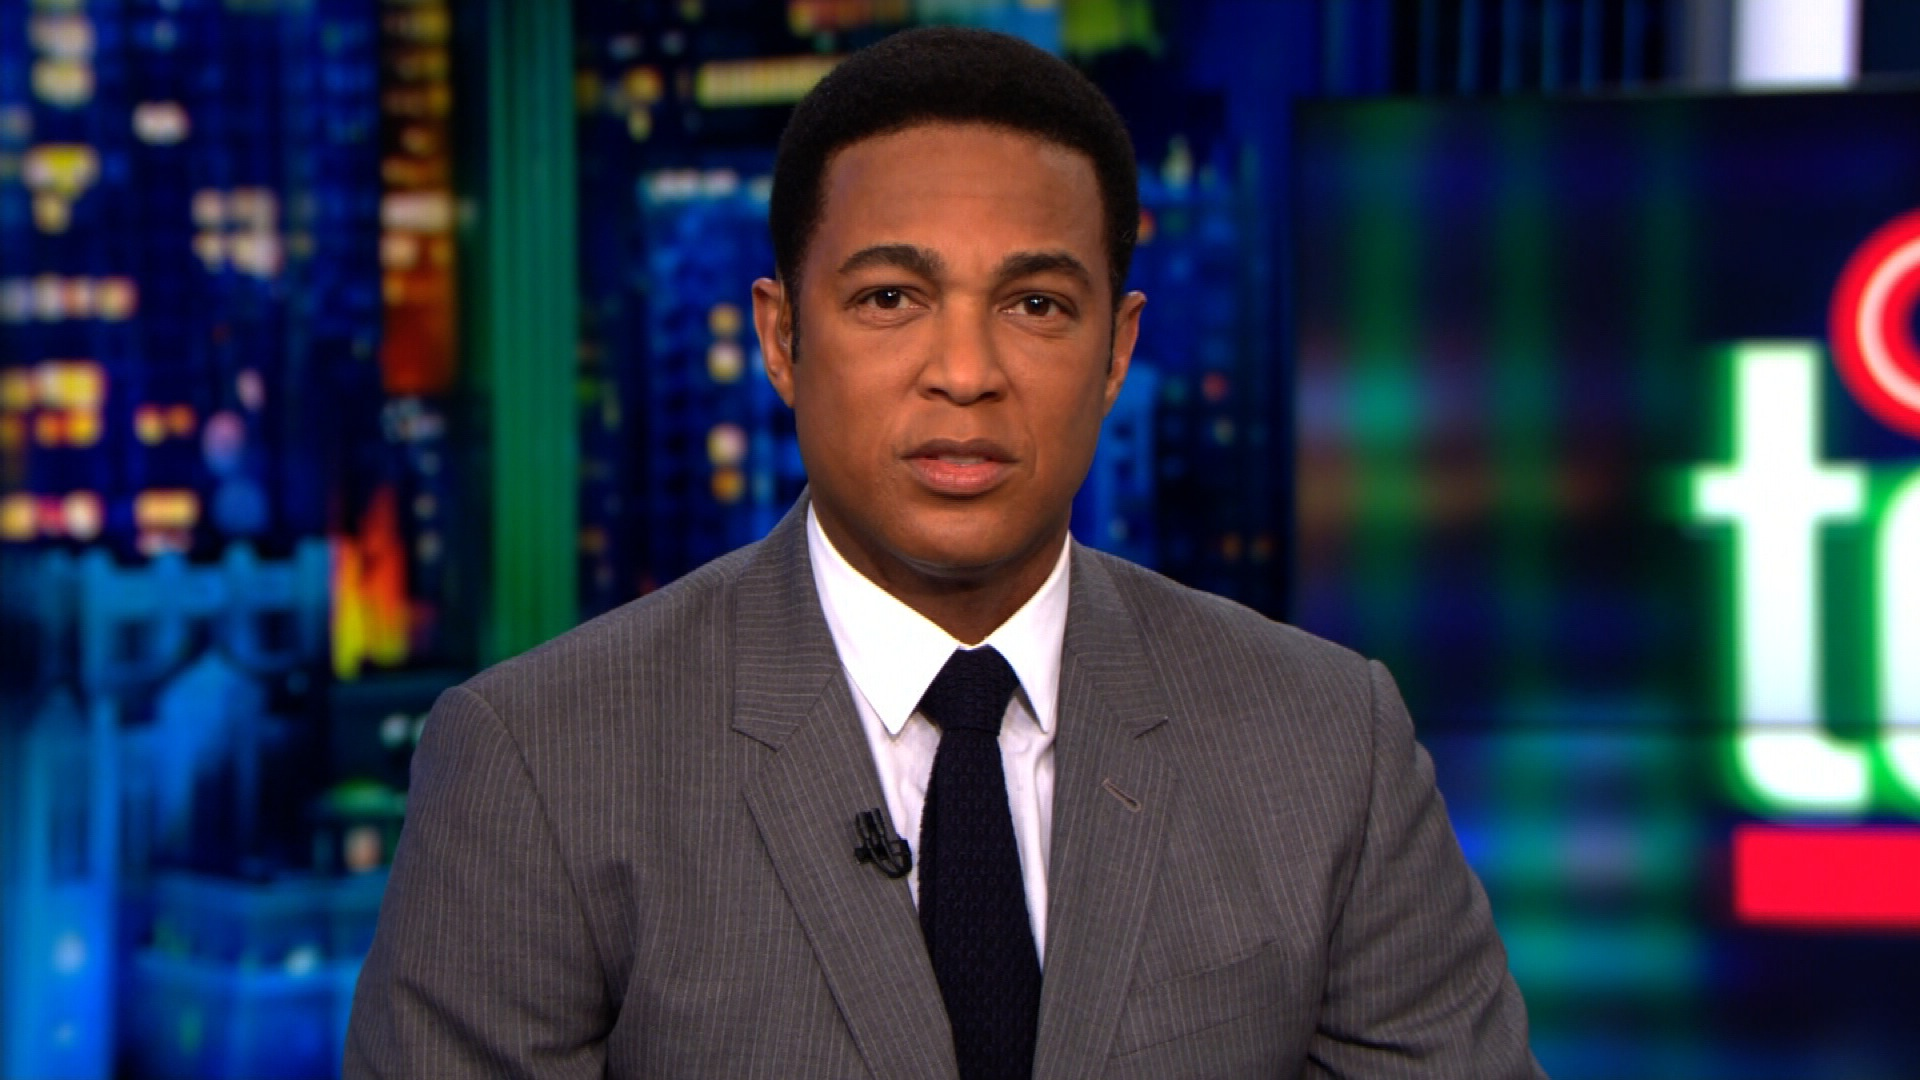 Don Lemon Responds to Donald Trump's Attacks Calling him the 'Dumbest Man on Television'